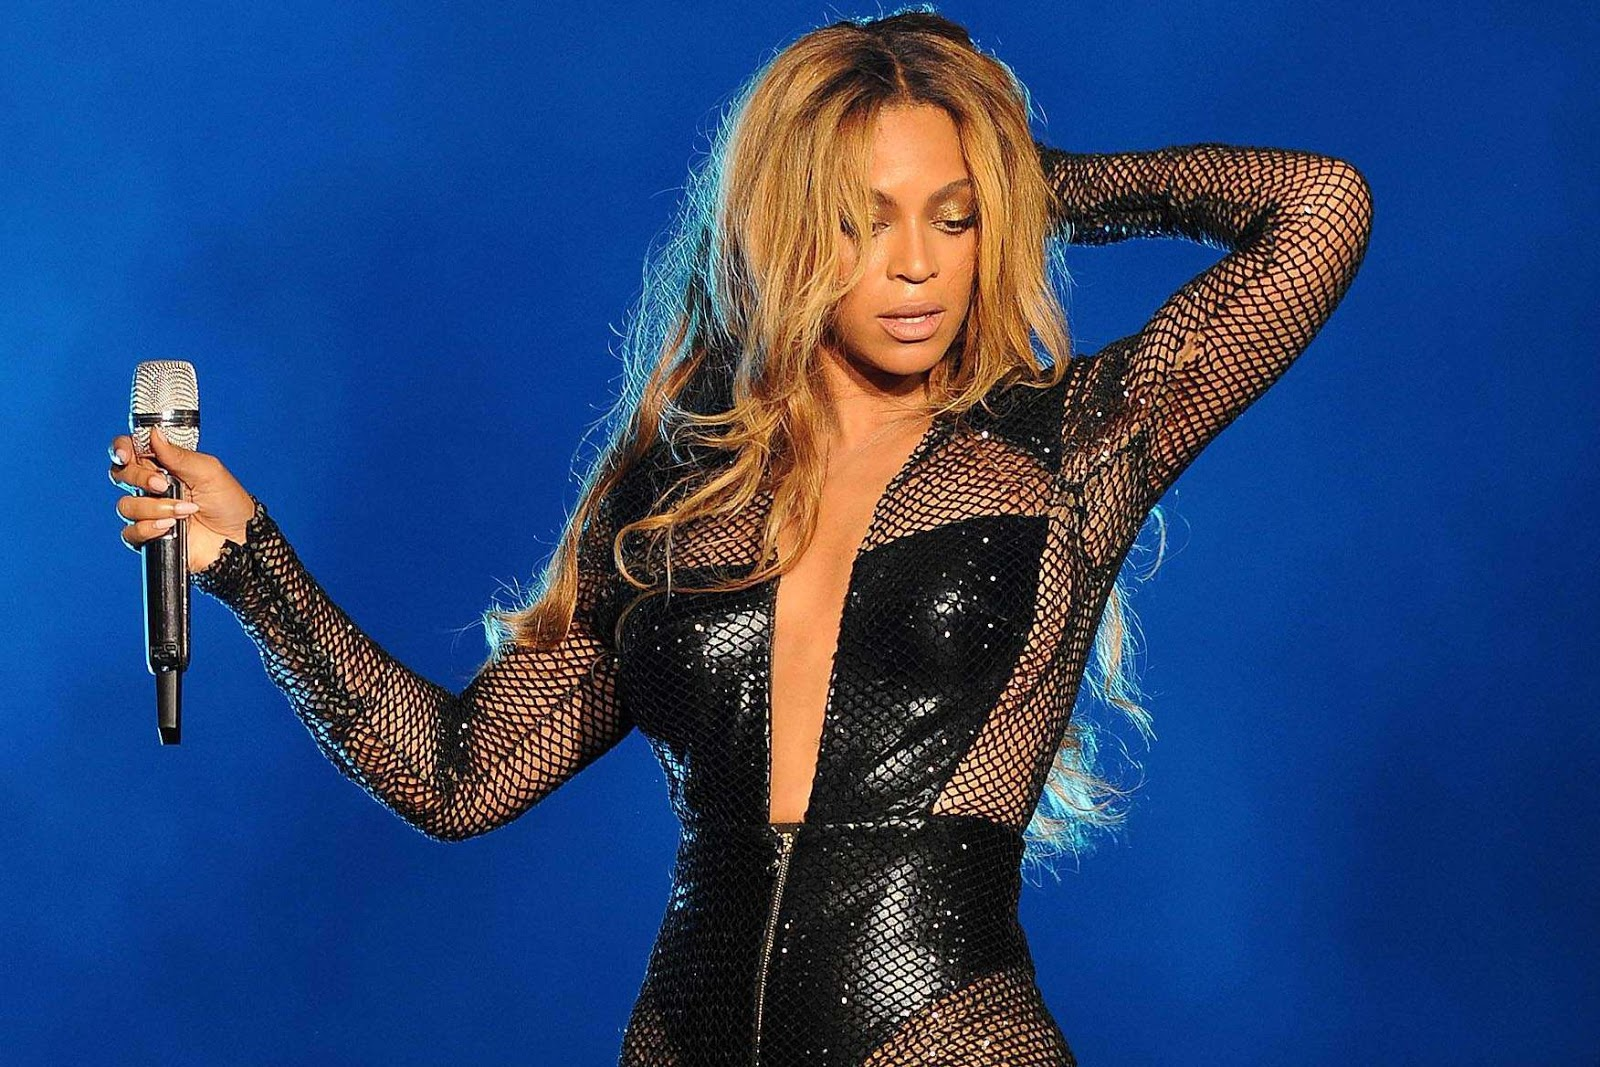 Hollywod Beyonce Hot Hd Wallpaper , She Is One Of The -4591